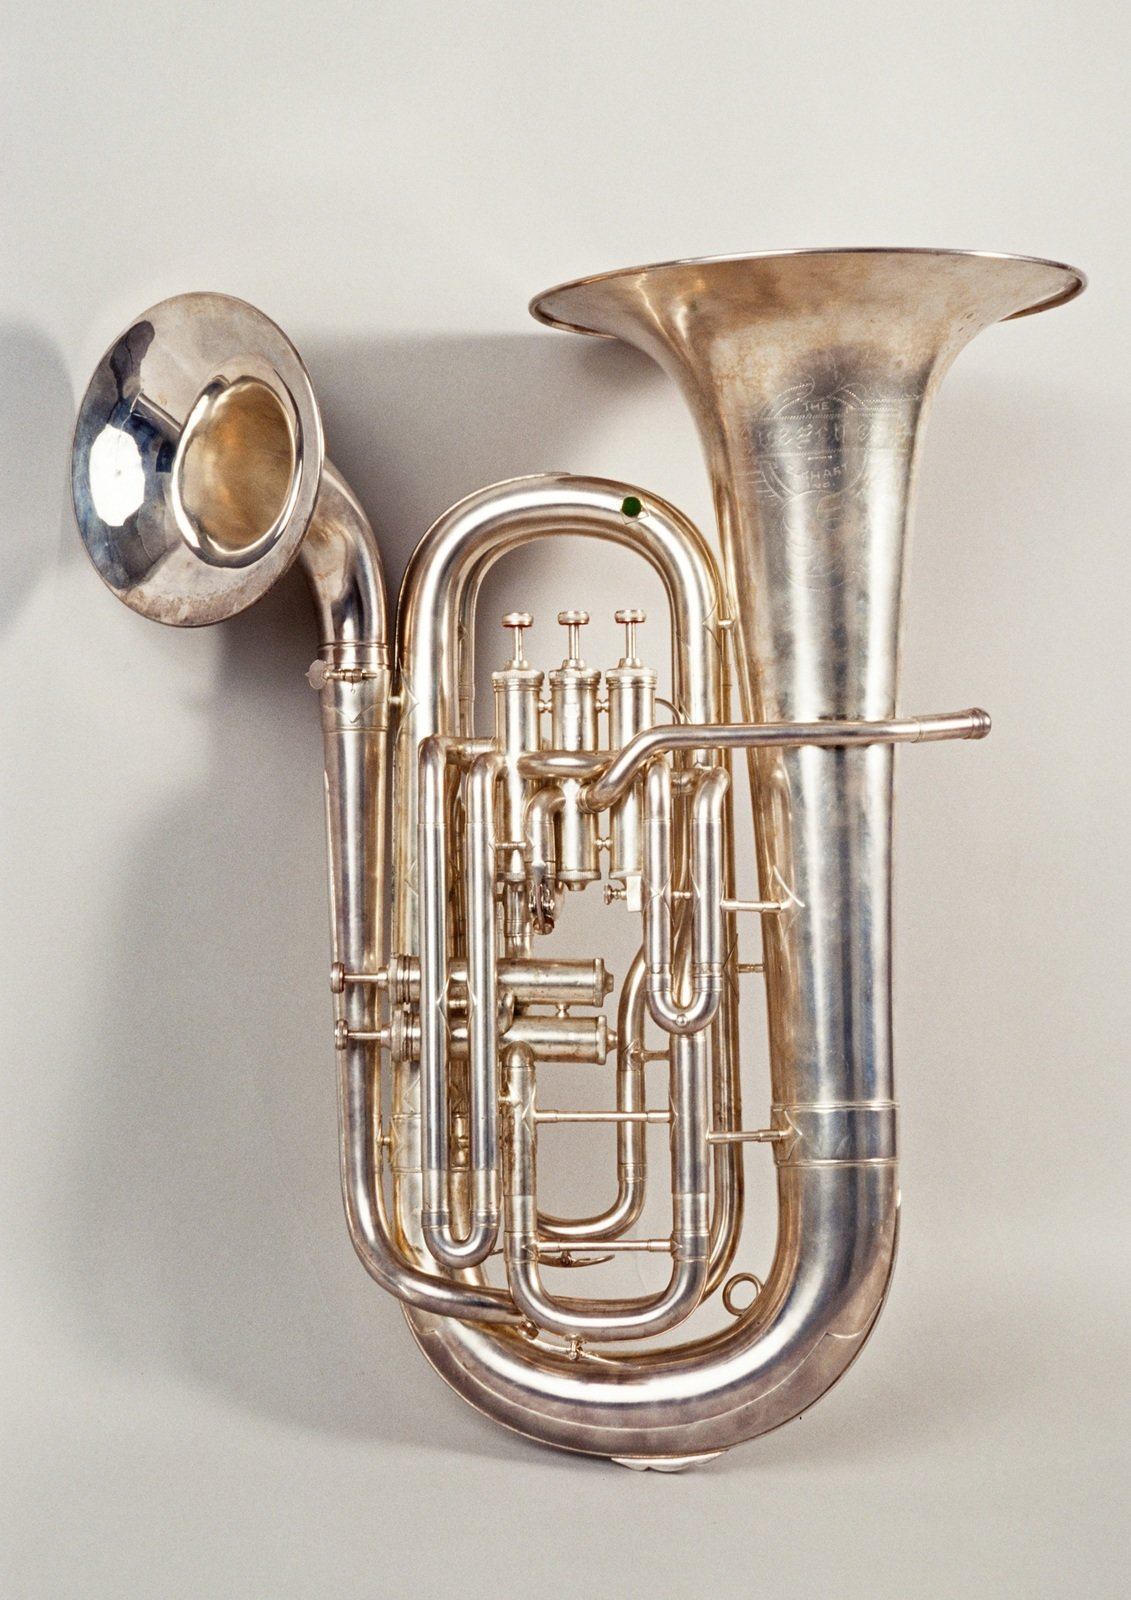 Double-bell euphonium, 1913, Buescher, [The fifth valve switches the windway to the smaller bell, allowing the player to change from the sound of a euphonium to something like the sound of a trombone.], University of Edinburgh, CC BY-NC-SA